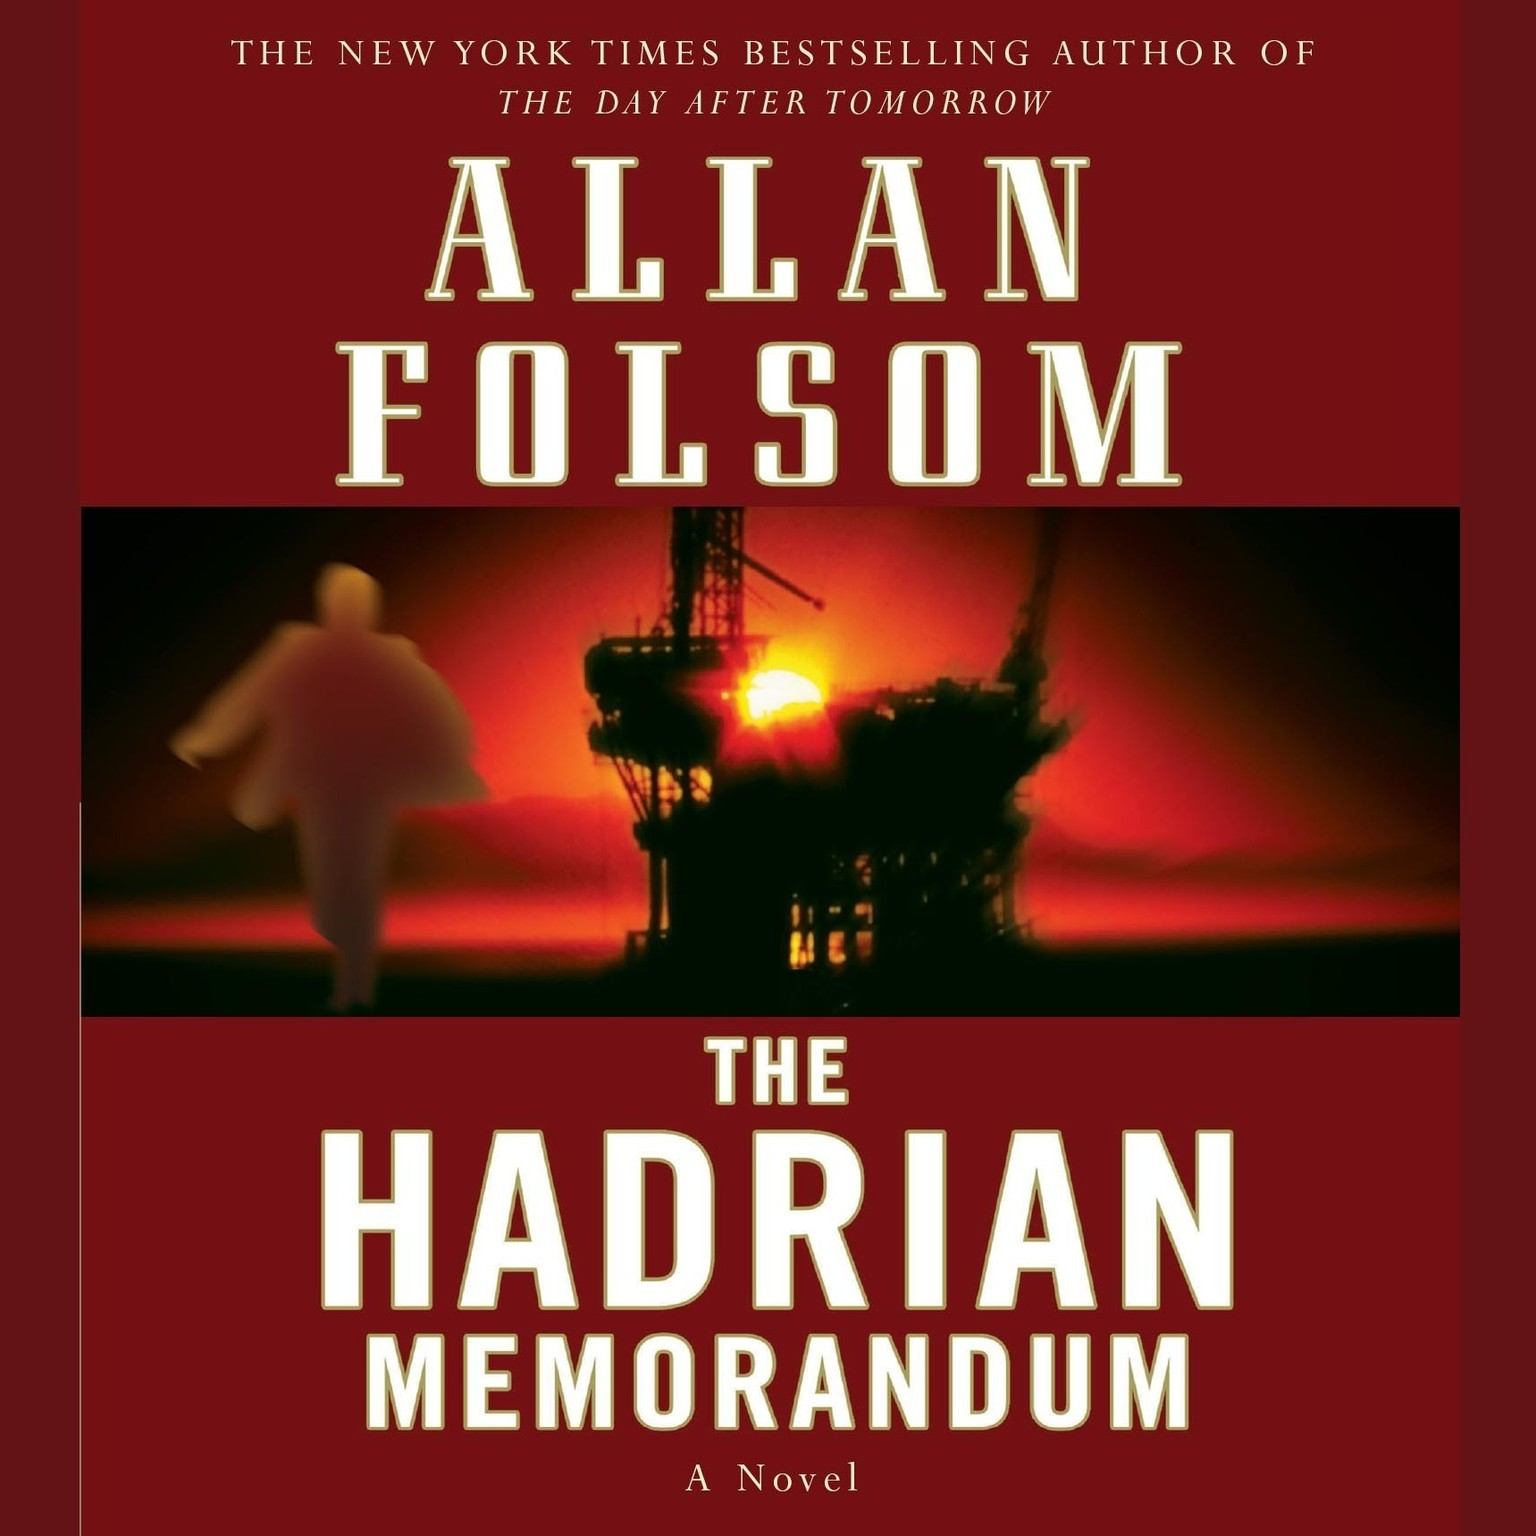 Printable The Hadrian Memorandum Audiobook Cover Art